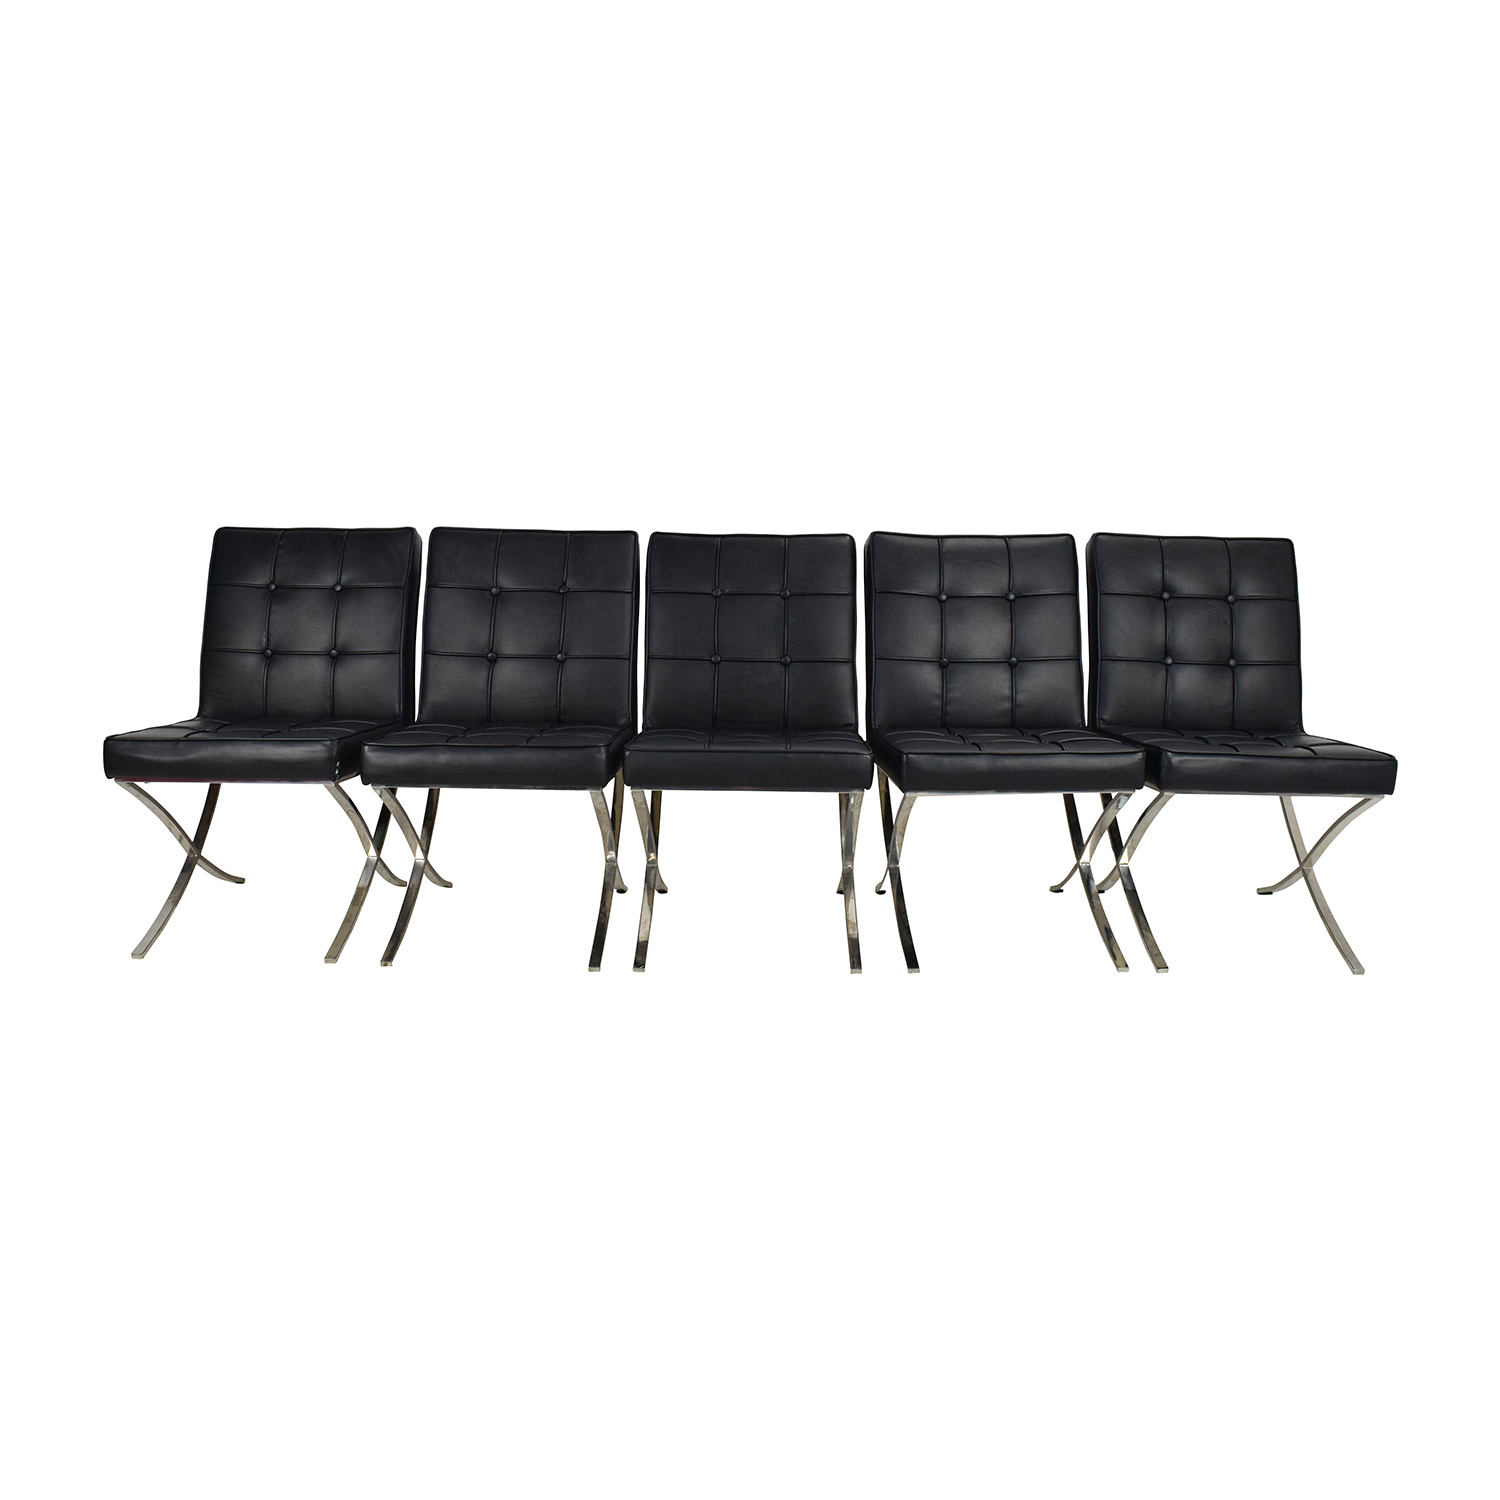 Black Leather Conference Room Chair Set sale